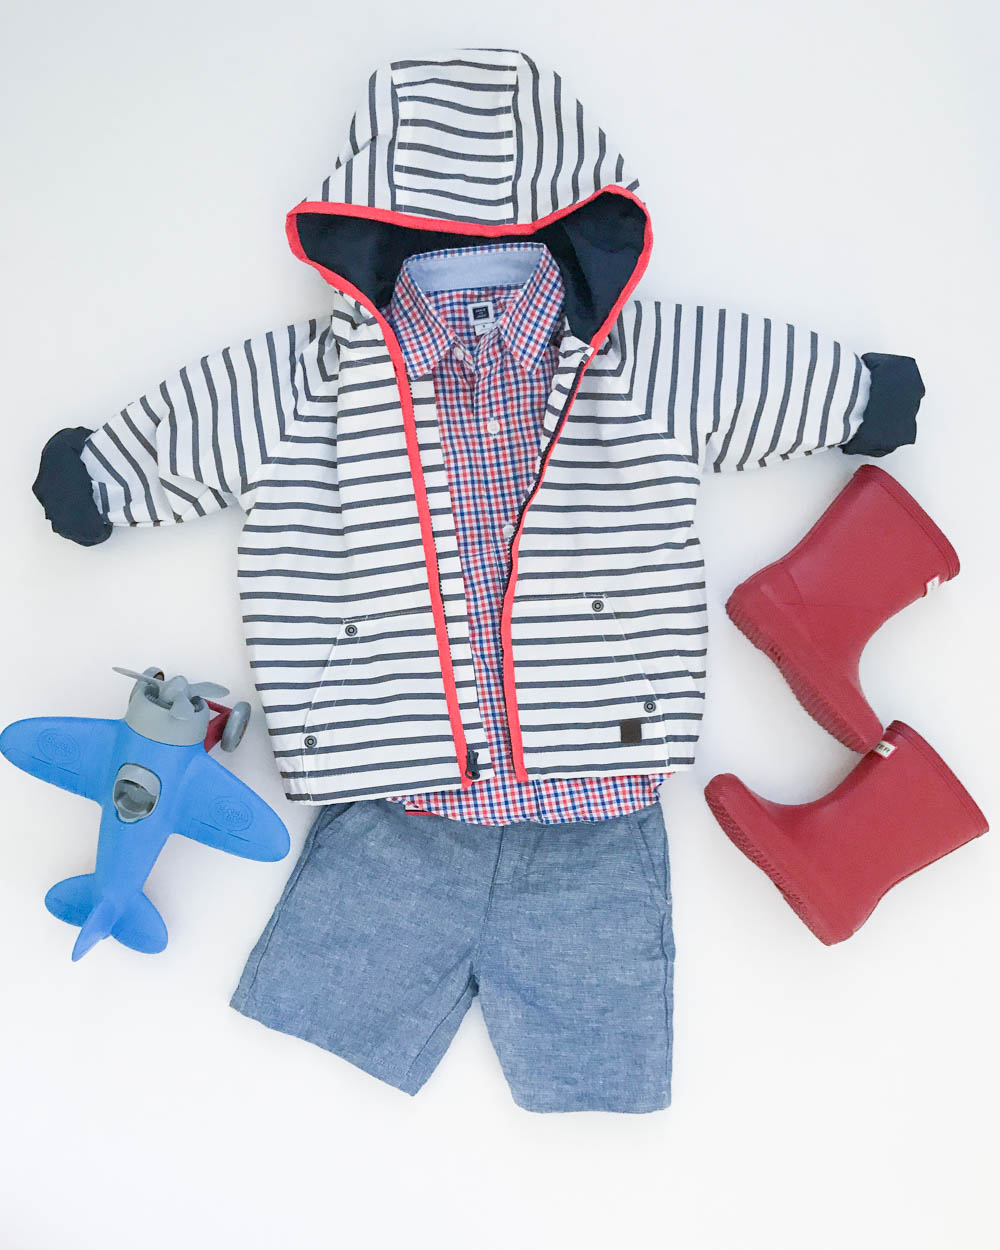 Janie and Jack | 4th of July Outfits | Toddlers | Summer Toddler Outfits